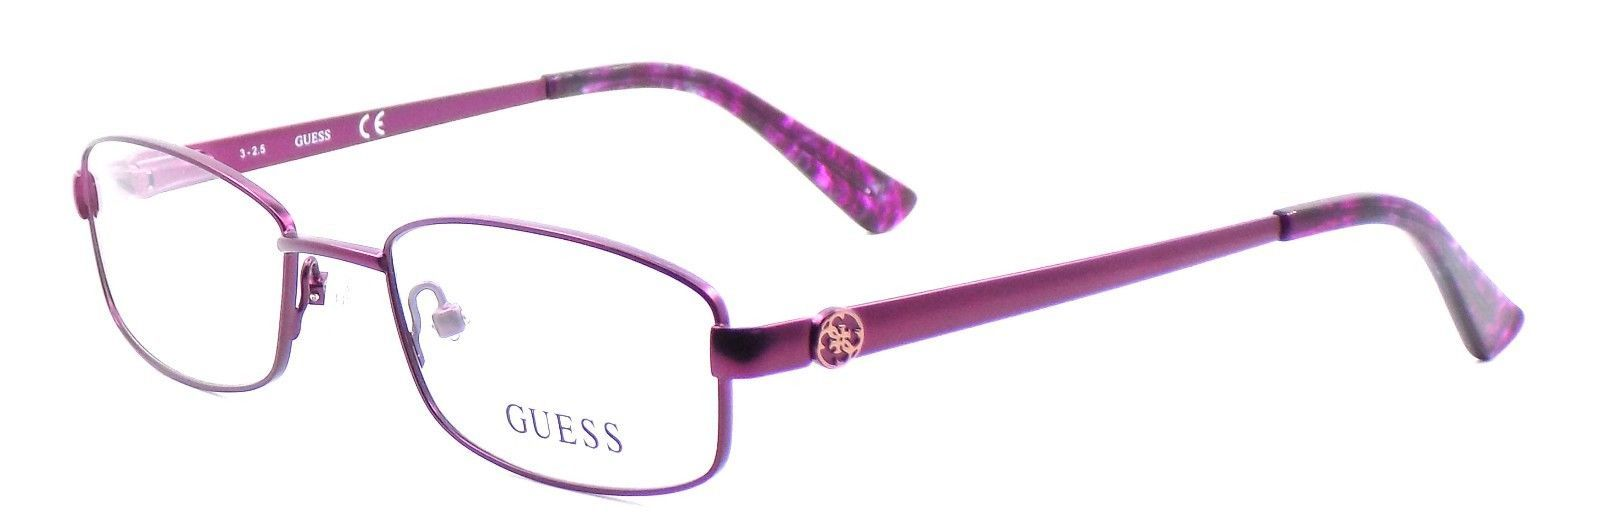 Primary image for GUESS GU2524 082 Women's Eyeglasses Frames 49-18-135 Purple + CASE